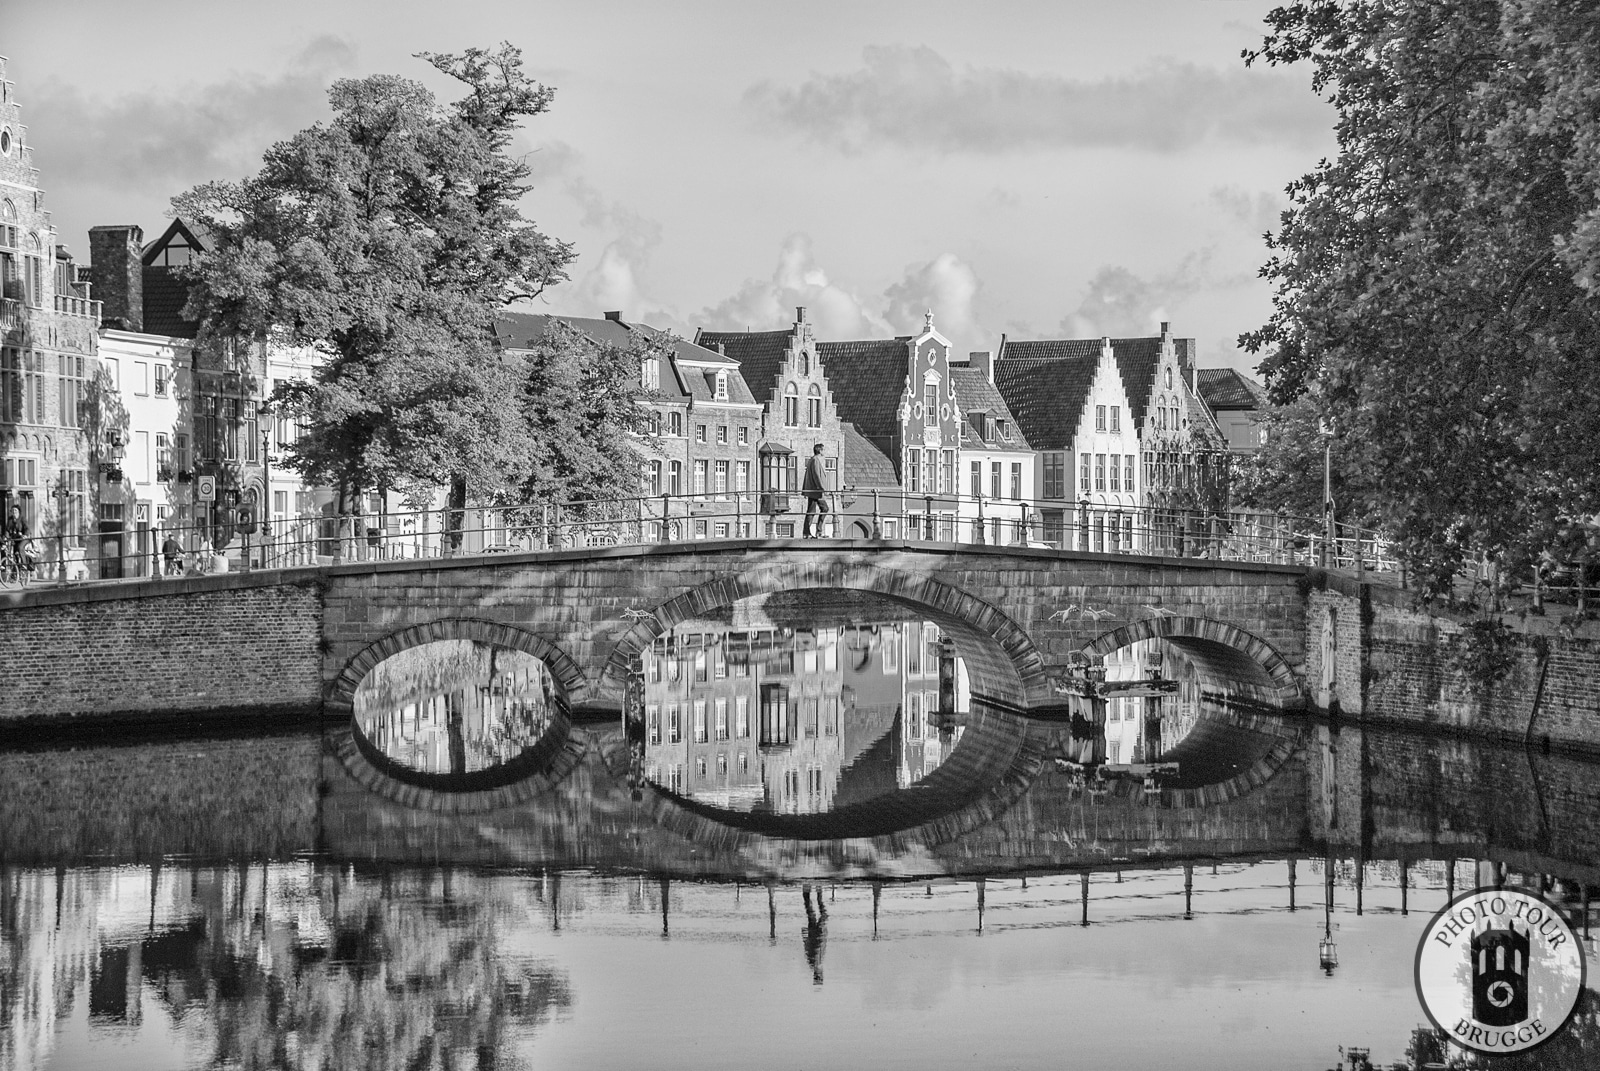 The Carmersbrug bridge in Bruges Belgium, this take as the main photo for Photo Tour Brugge.